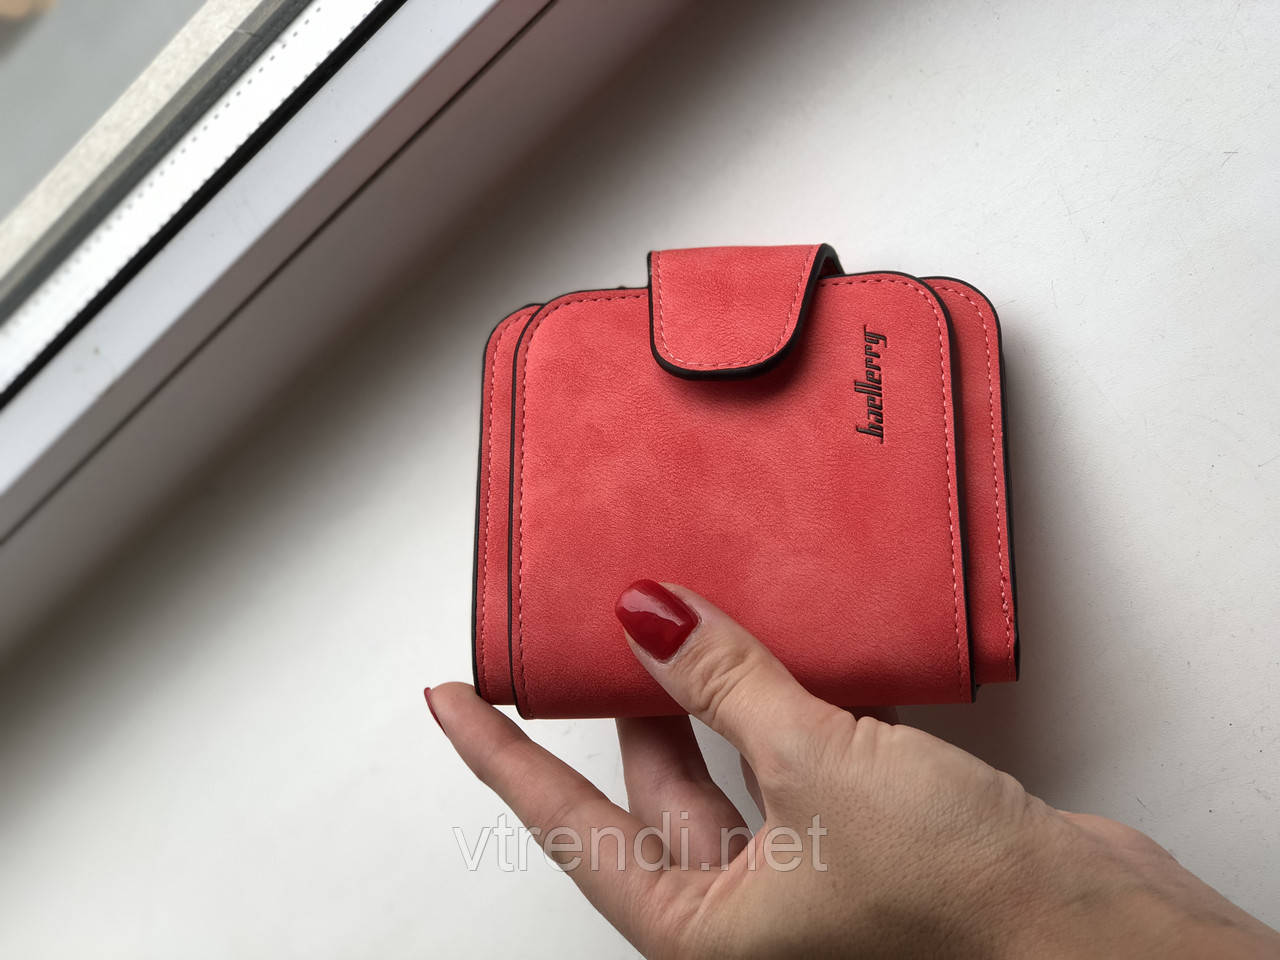 e2c6af576dc4 Кошелек Baellerry Forever mini exclusive color red: продажа, цена в ...